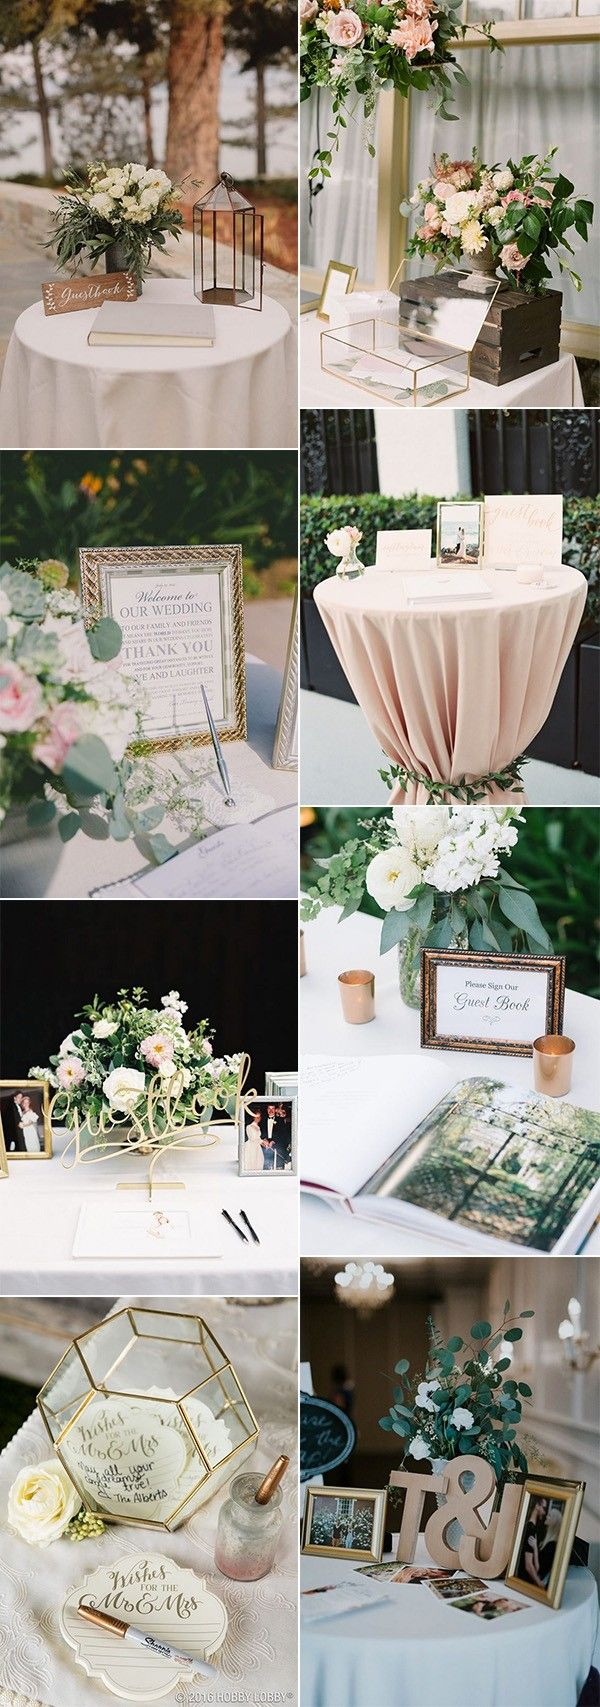 chic wedding guest book sign in table decoration ideas for 2018 #weddingideas #weddingdecor #weddingreception